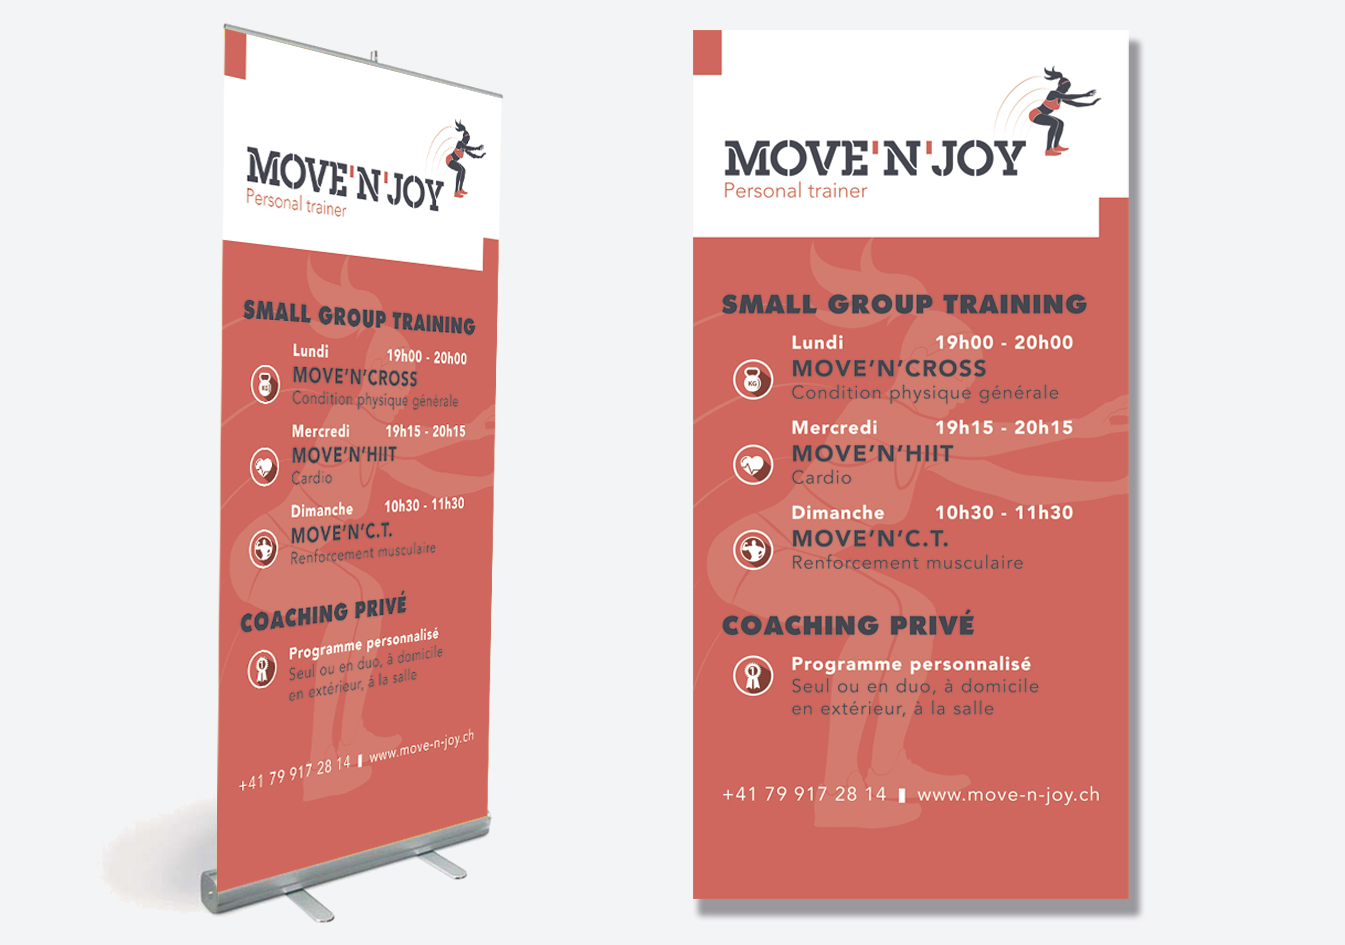 Roll-up Move'n'joy